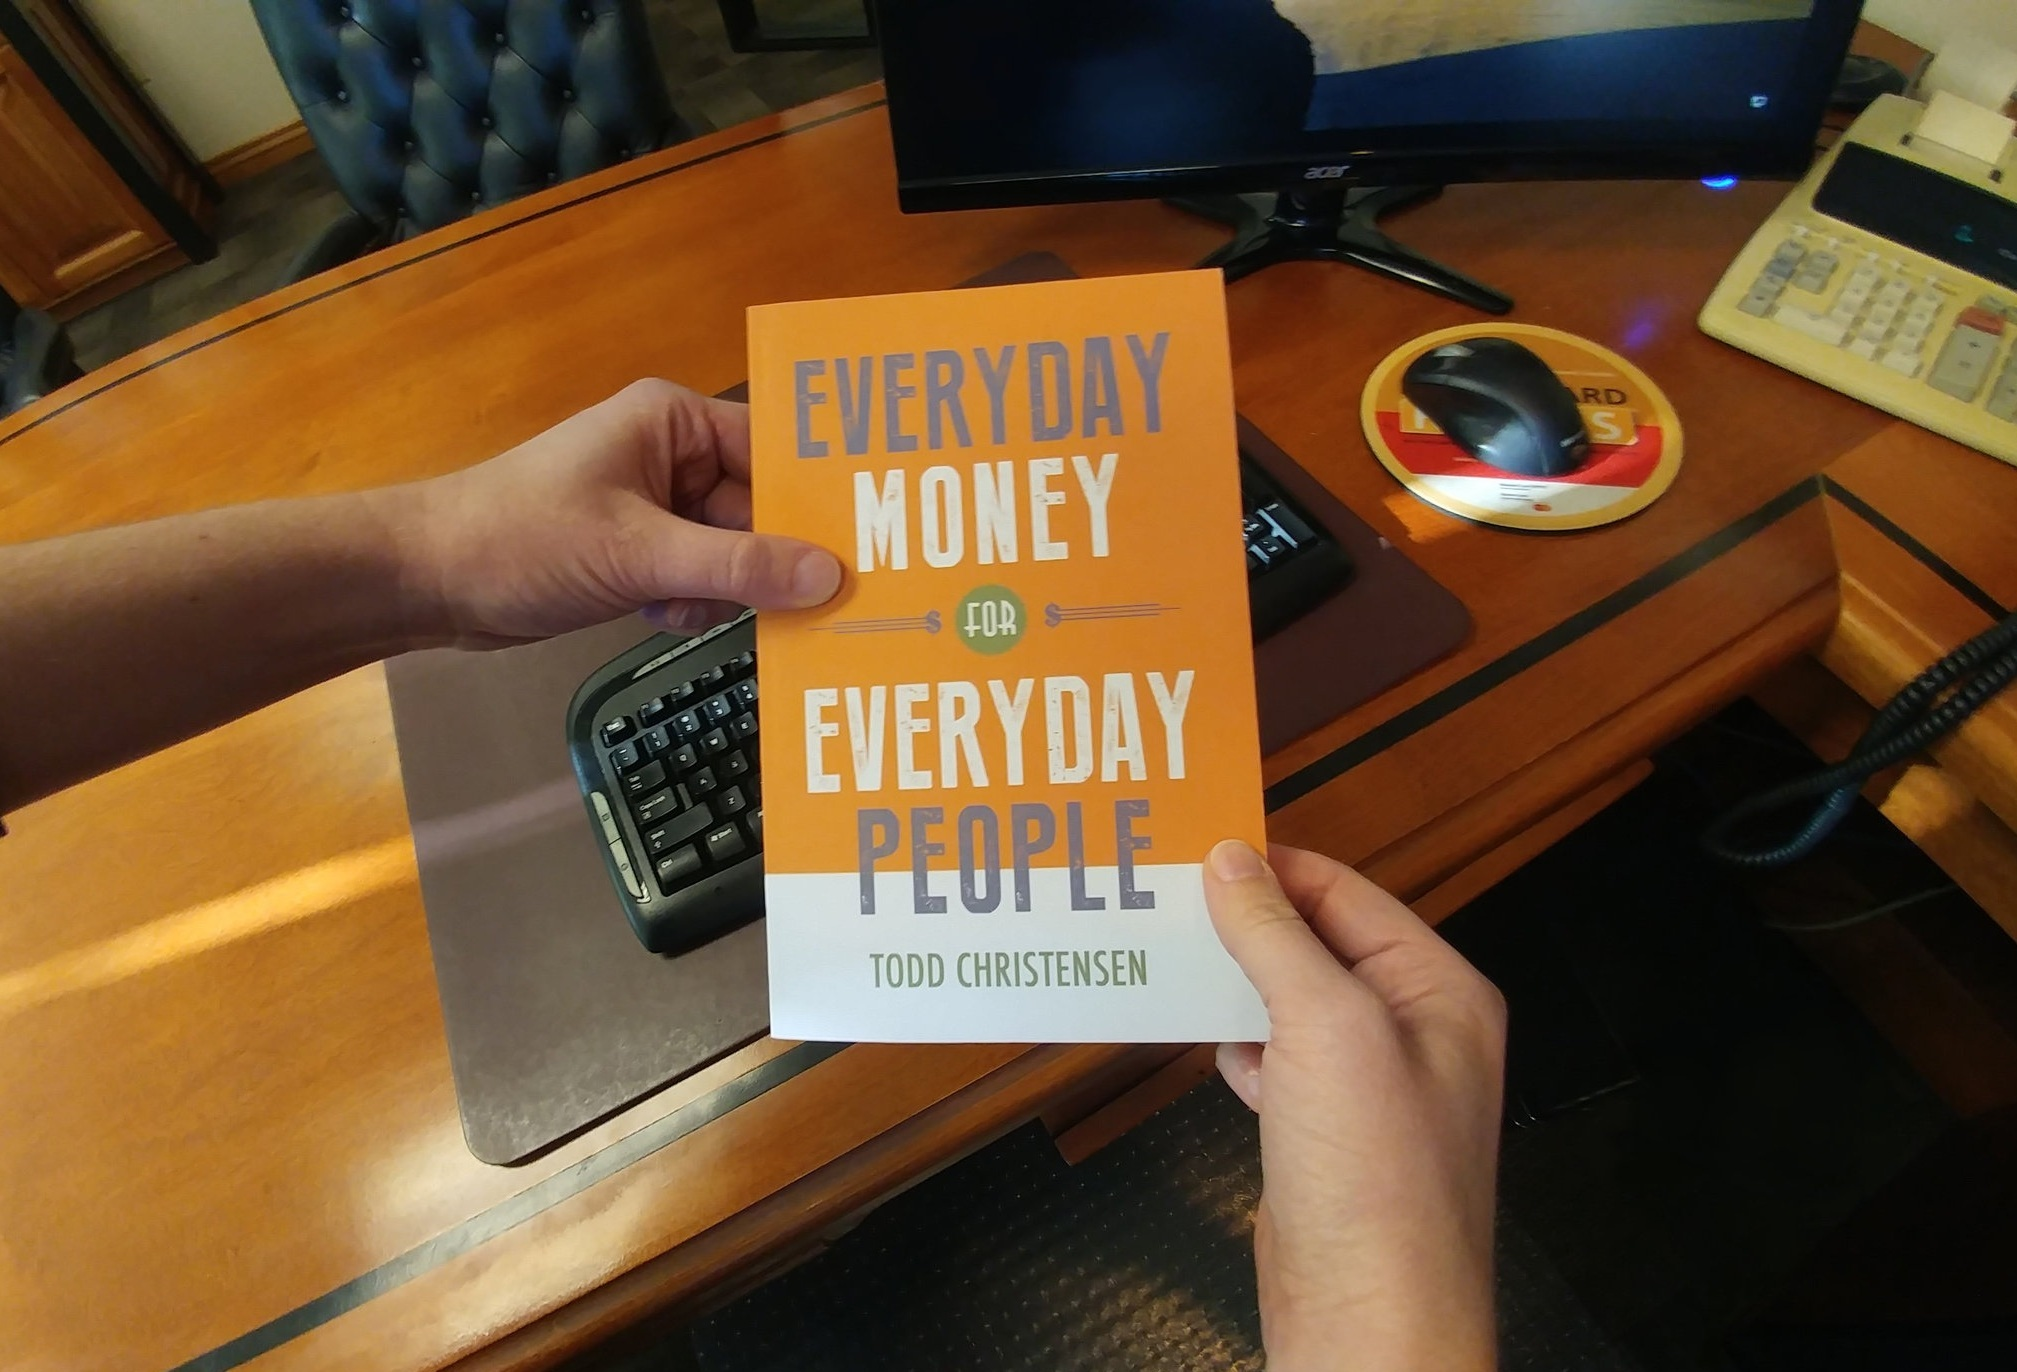 Discounted Copy of Everyday Money for Everyday People - Receive 50% off your purchase of our Education Manager's powerful and practical money guide!